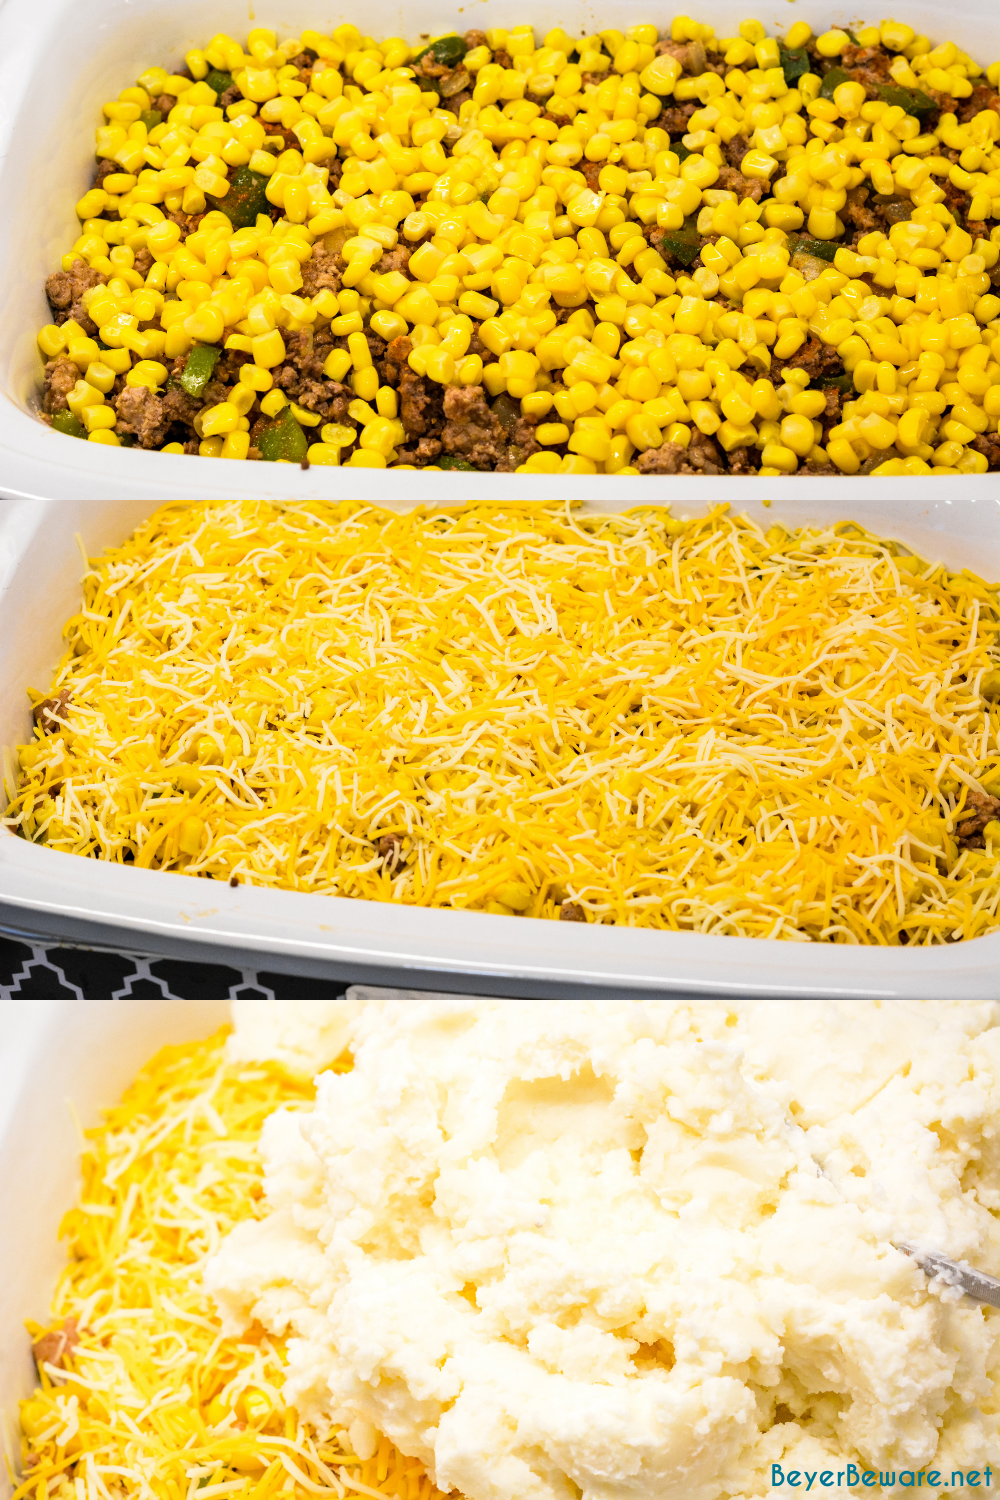 Taco Shepherd's Pie is an easy taco casserole made with leftover mashed potatoes, ground beef, corn, cheese, and peppers for crock pot shepherd's pie.